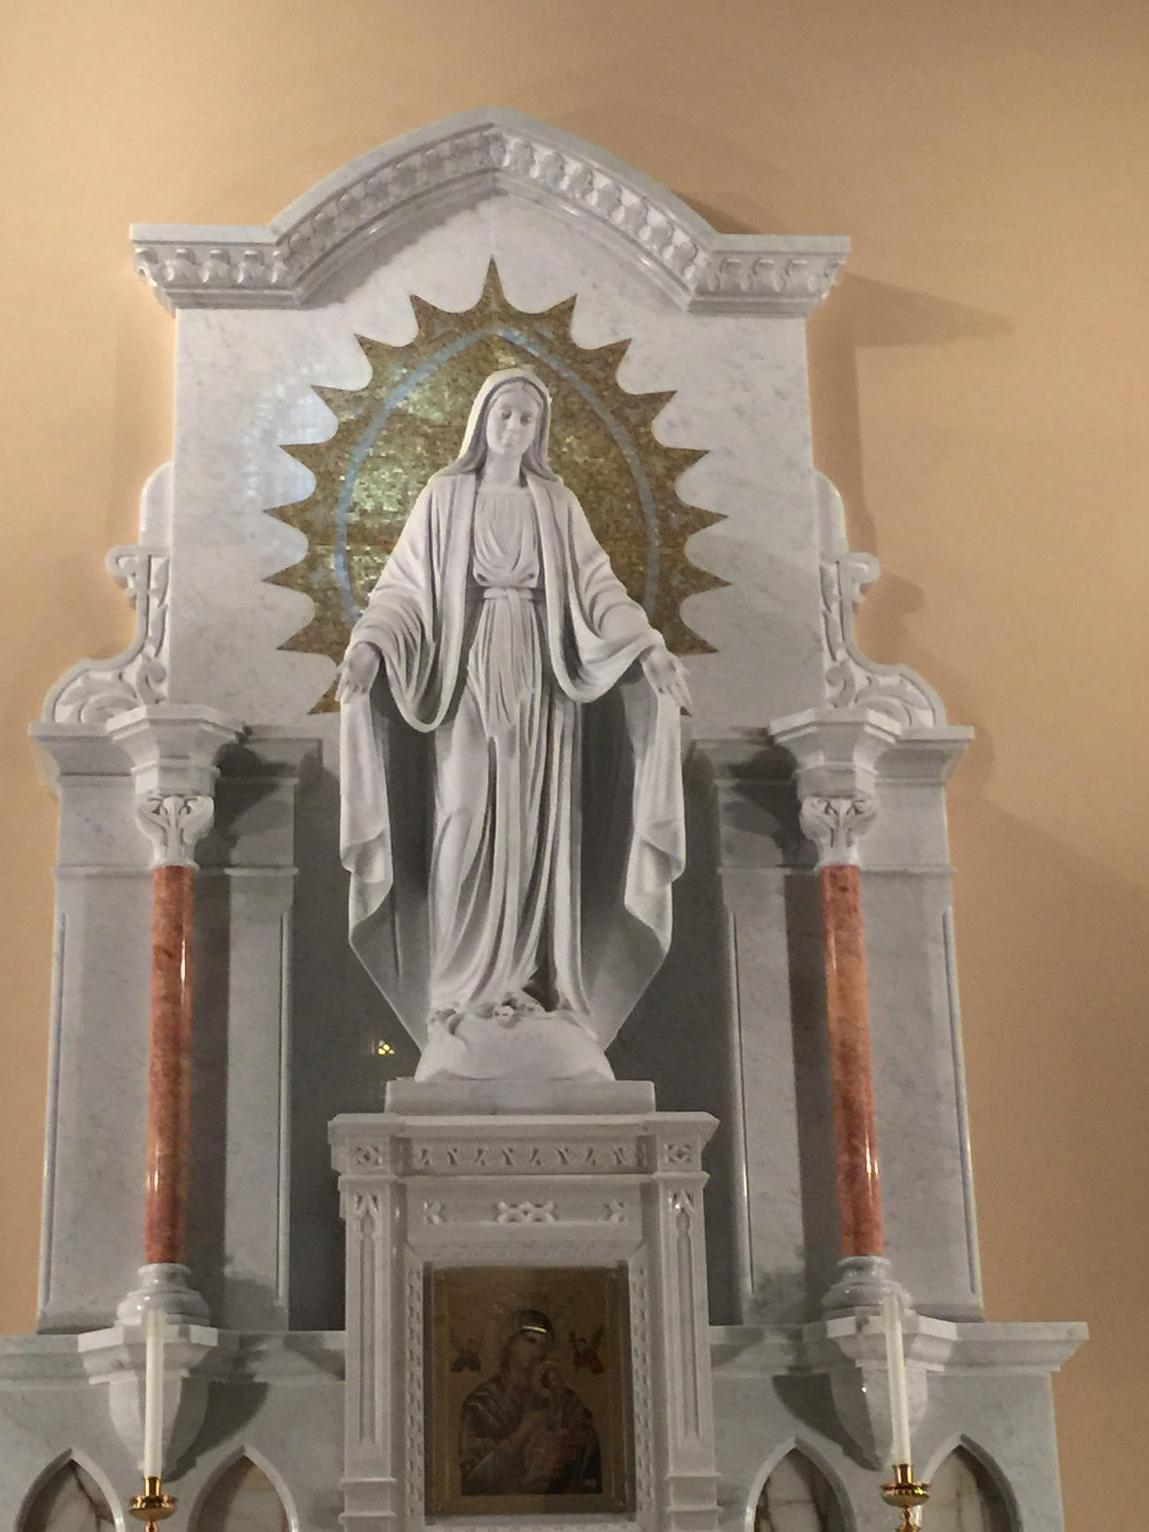 Mary humbles herself always. #homilytweet http://t.co/taaDX8RlKe